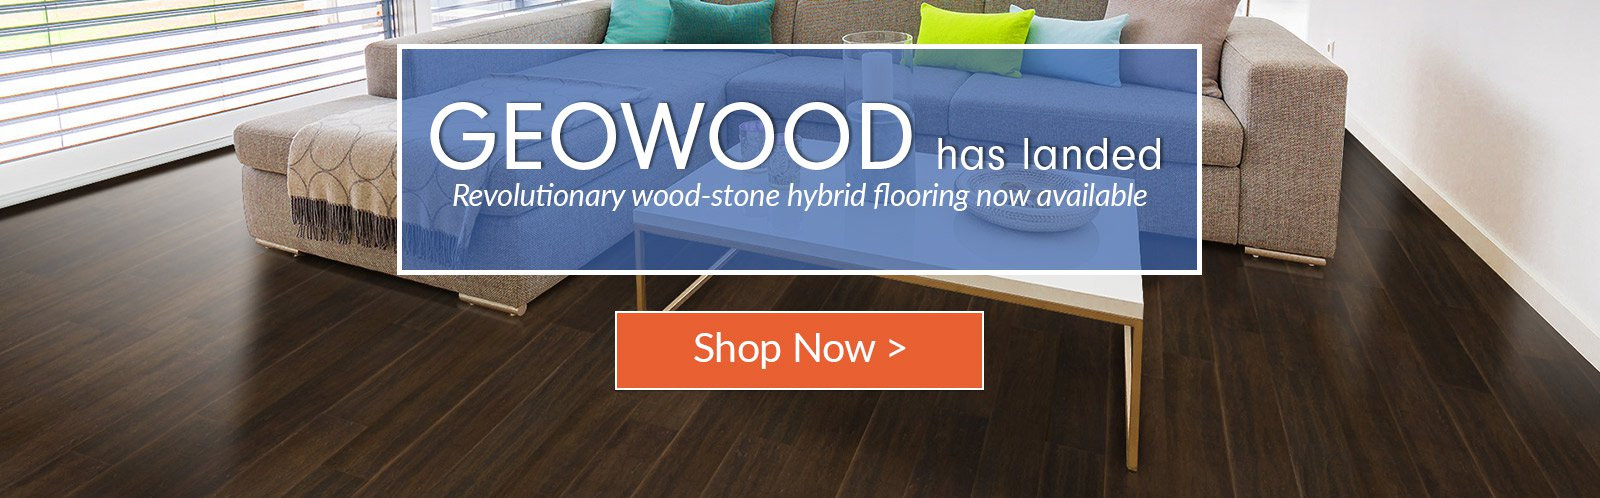 Bamboo Engineered Hardwood Flooring Of Green Building Construction Materials and Home Decor Cali Bamboo Pertaining to Geowood Launch Homepage Slider